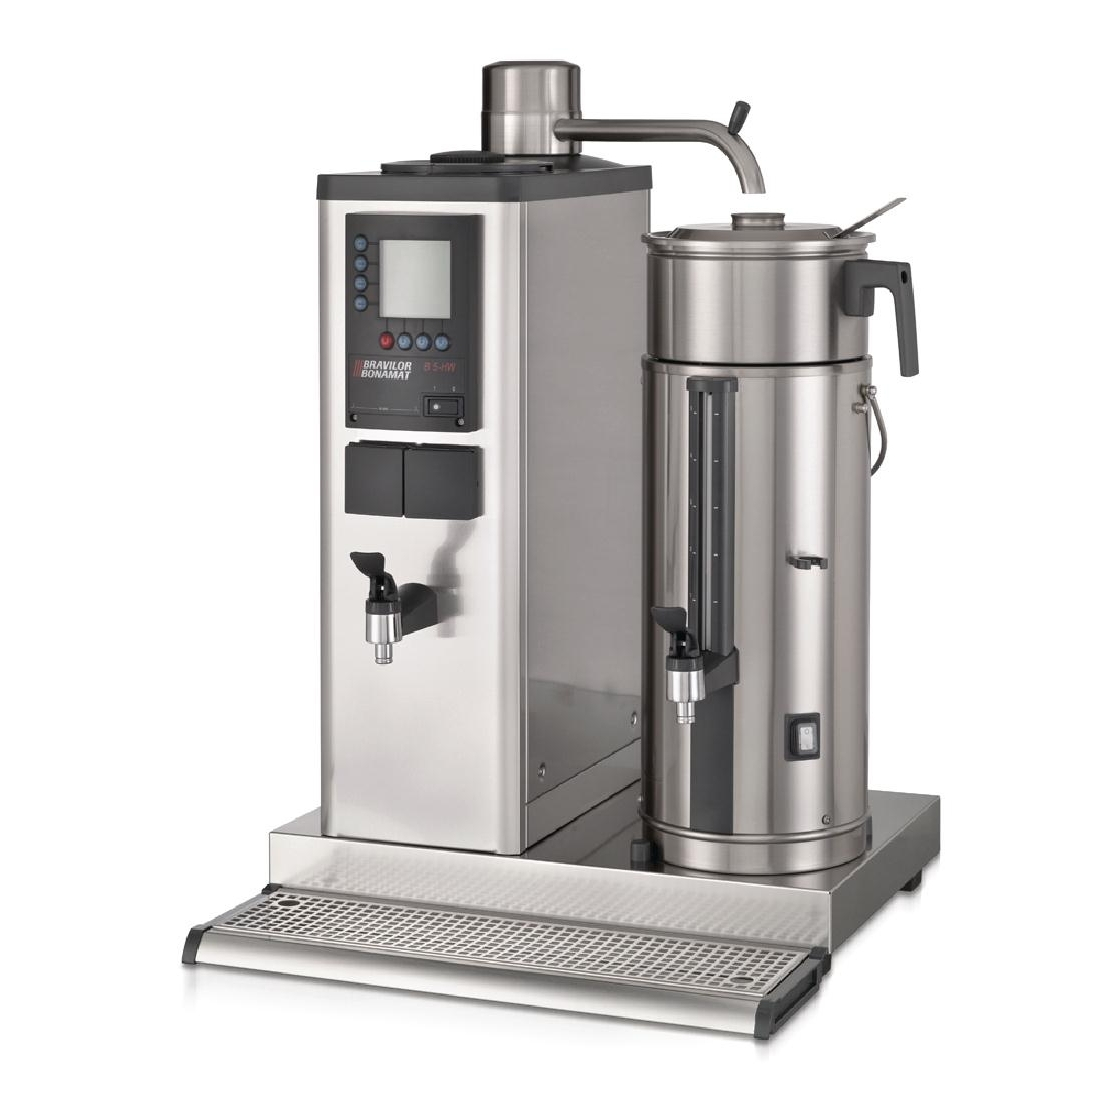 Bravilor B5 HWR Bulk Coffee Brewer with 5Ltr Coffee Urn and Hot Water Tap 3 Phase